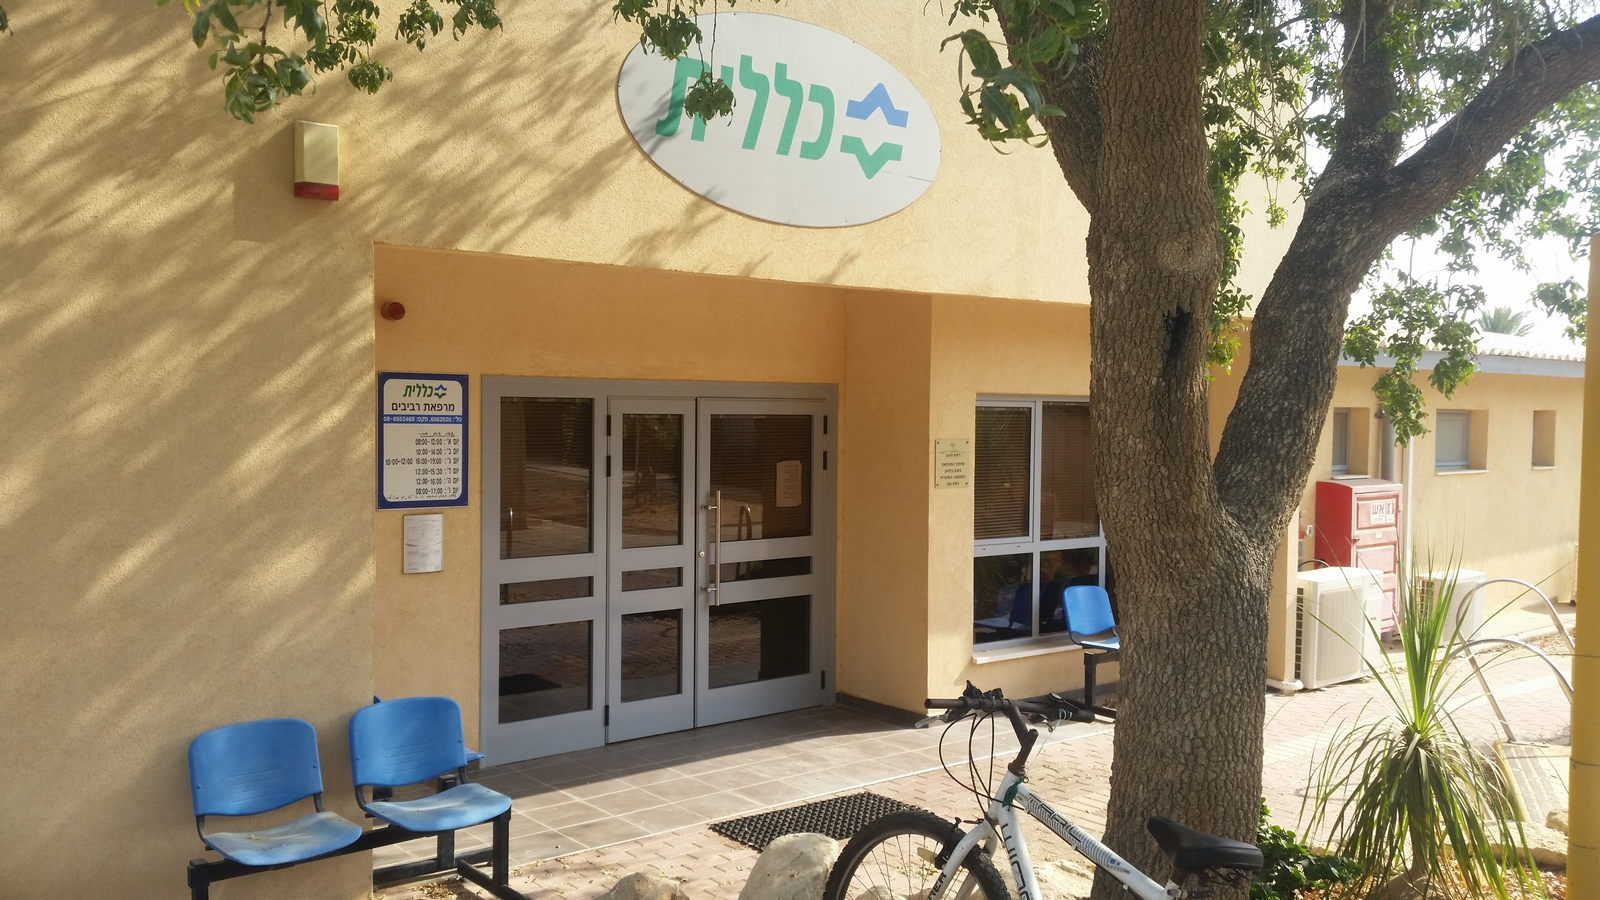 polyclinic Clalit in kibbutz Revivim